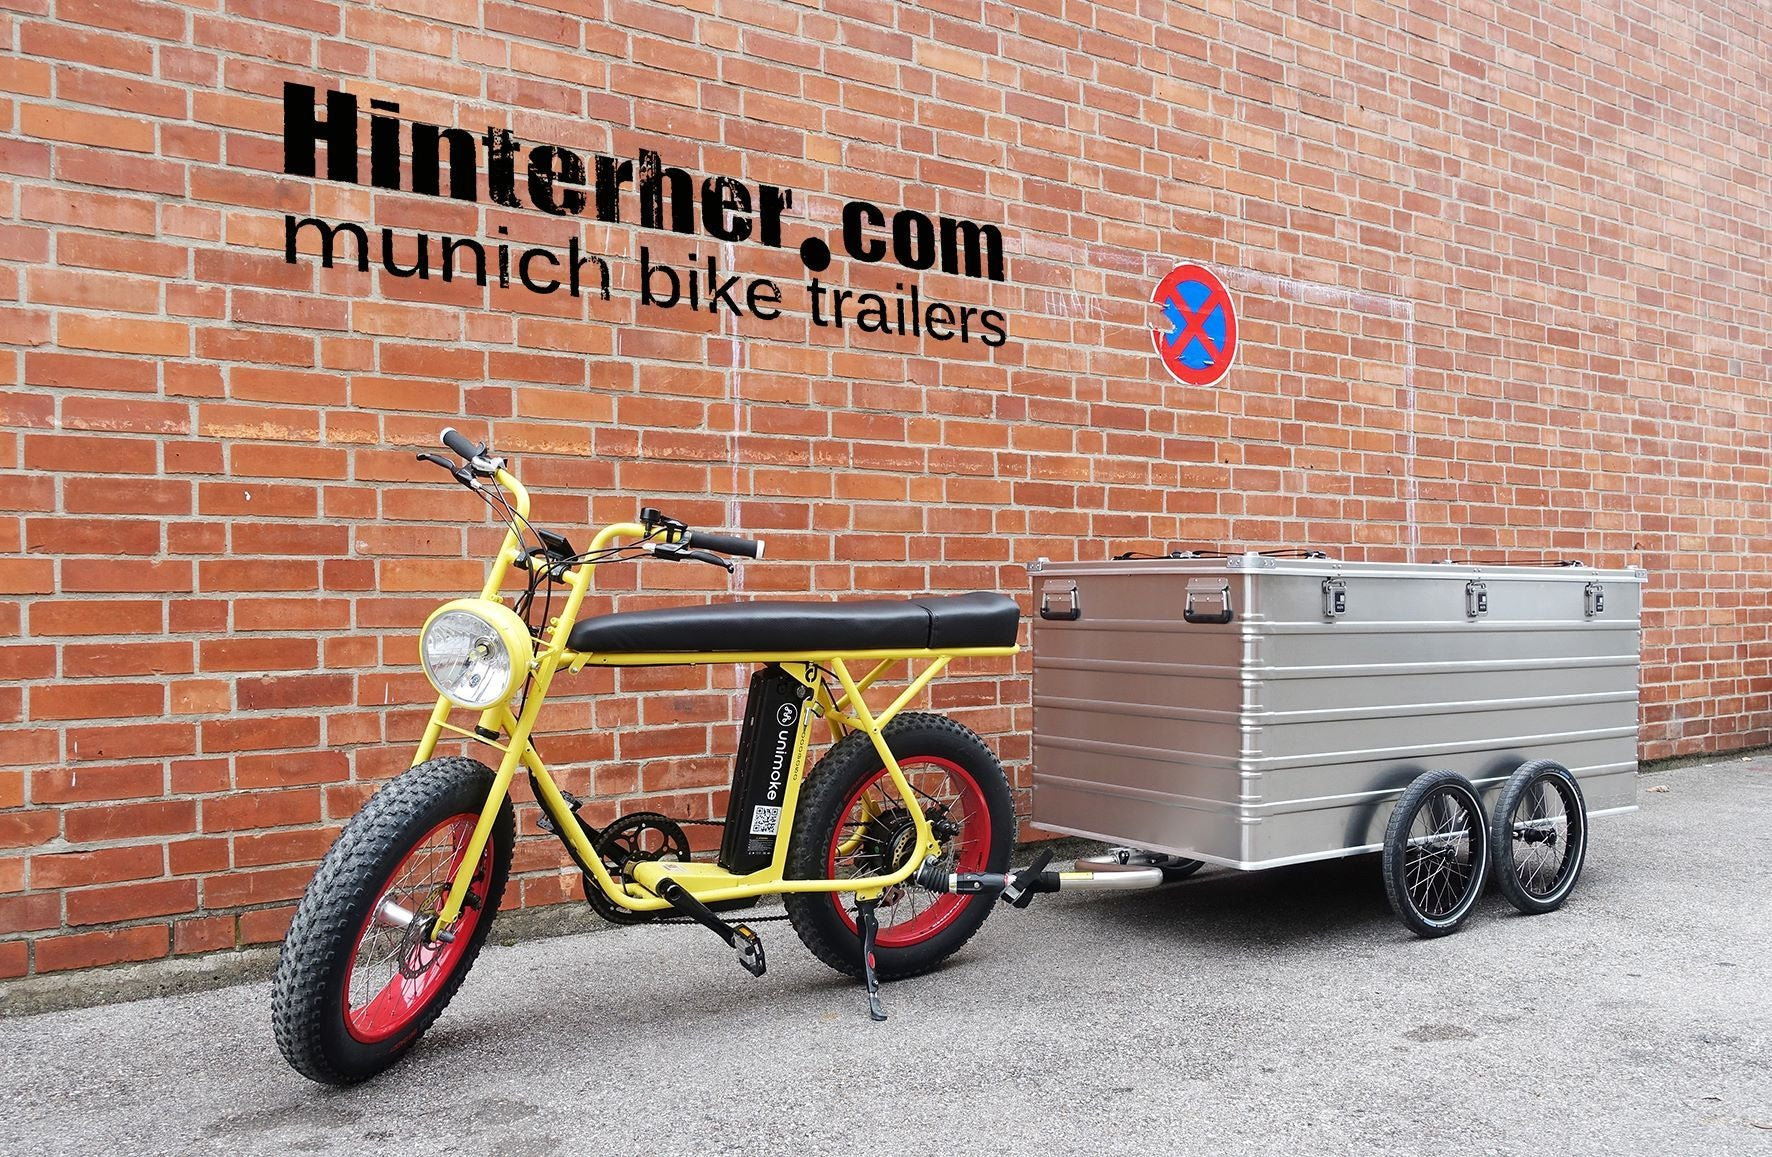 Love on first ride: UNIMOKE meets Hinterher.com